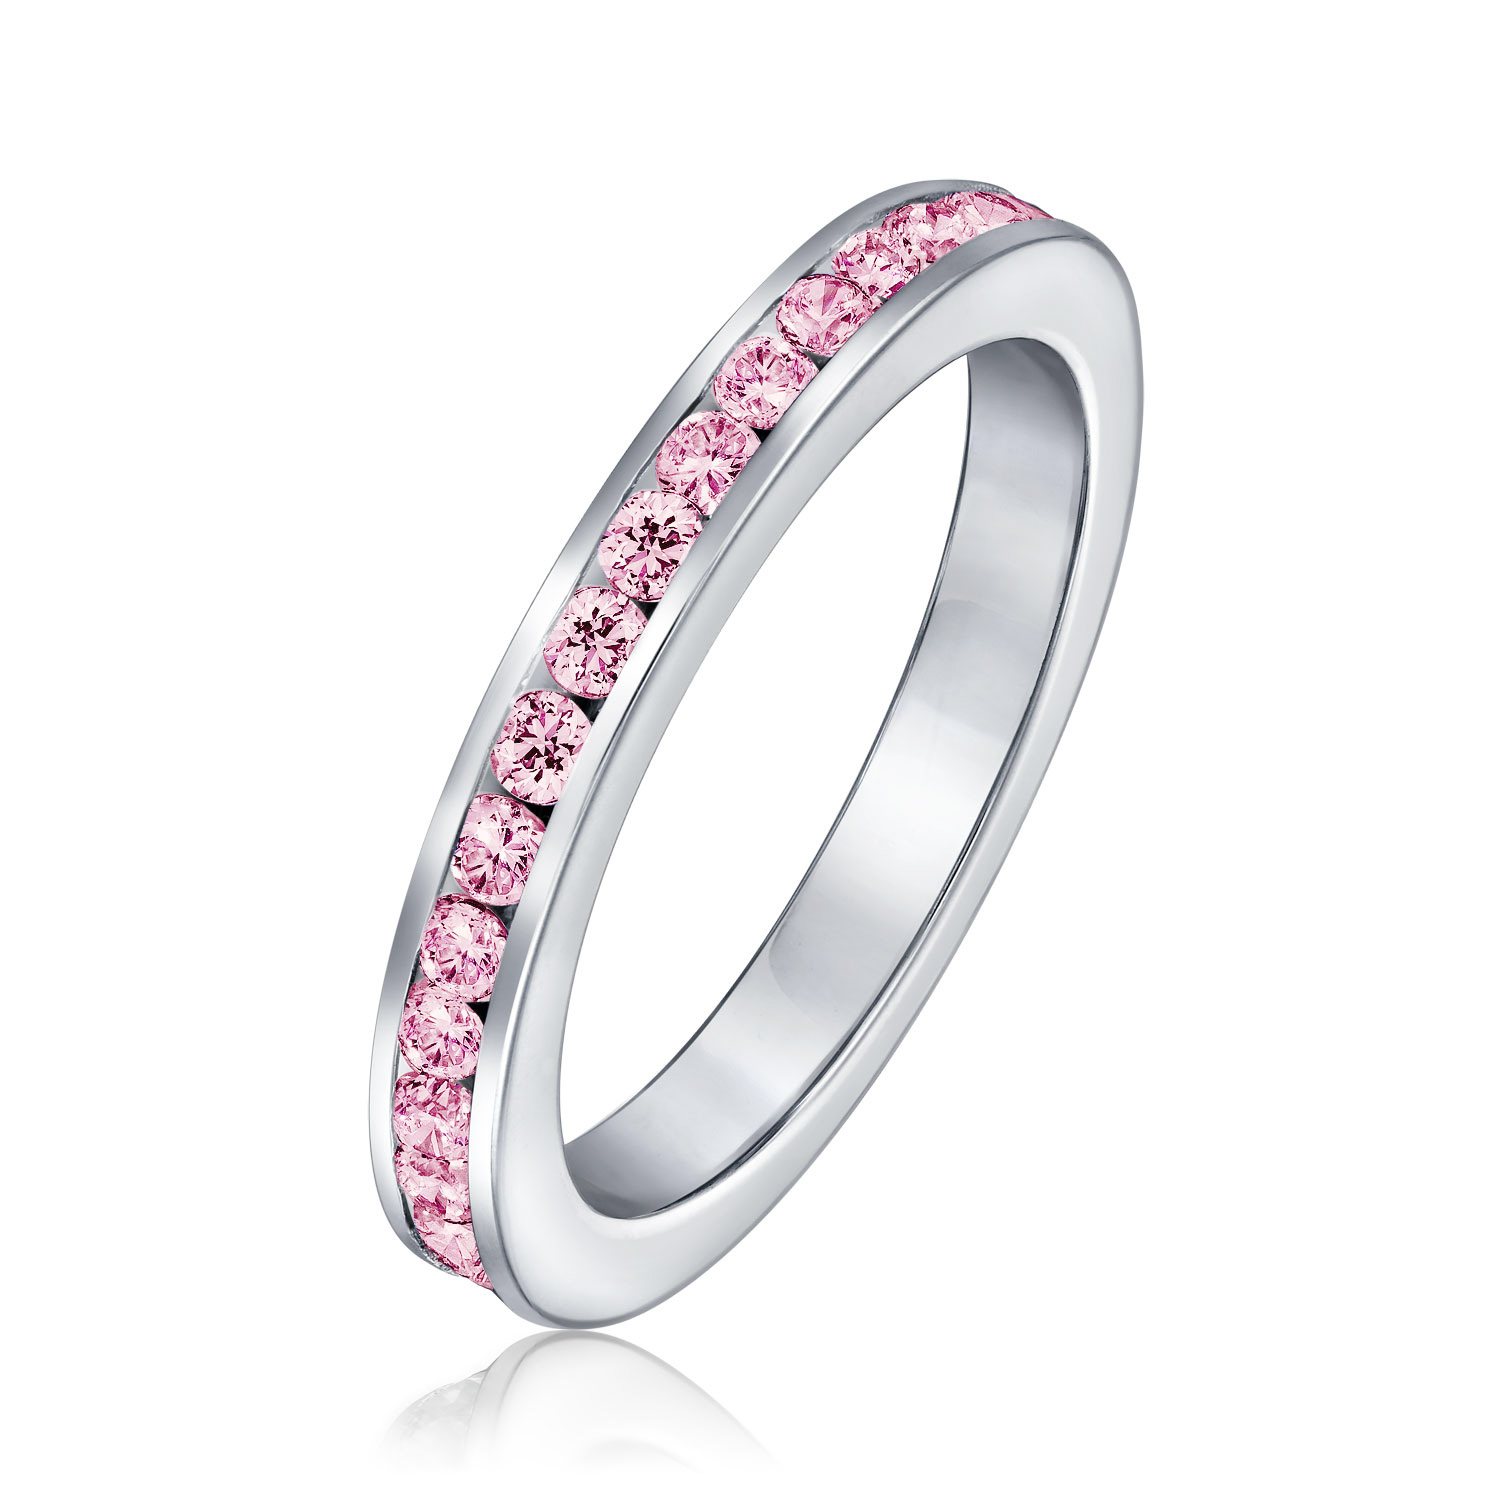 Bling Jewelry Silver Simulated Pink Tourmaline Cubic Zirconia October Birthstone Ring by Bling Jewelry